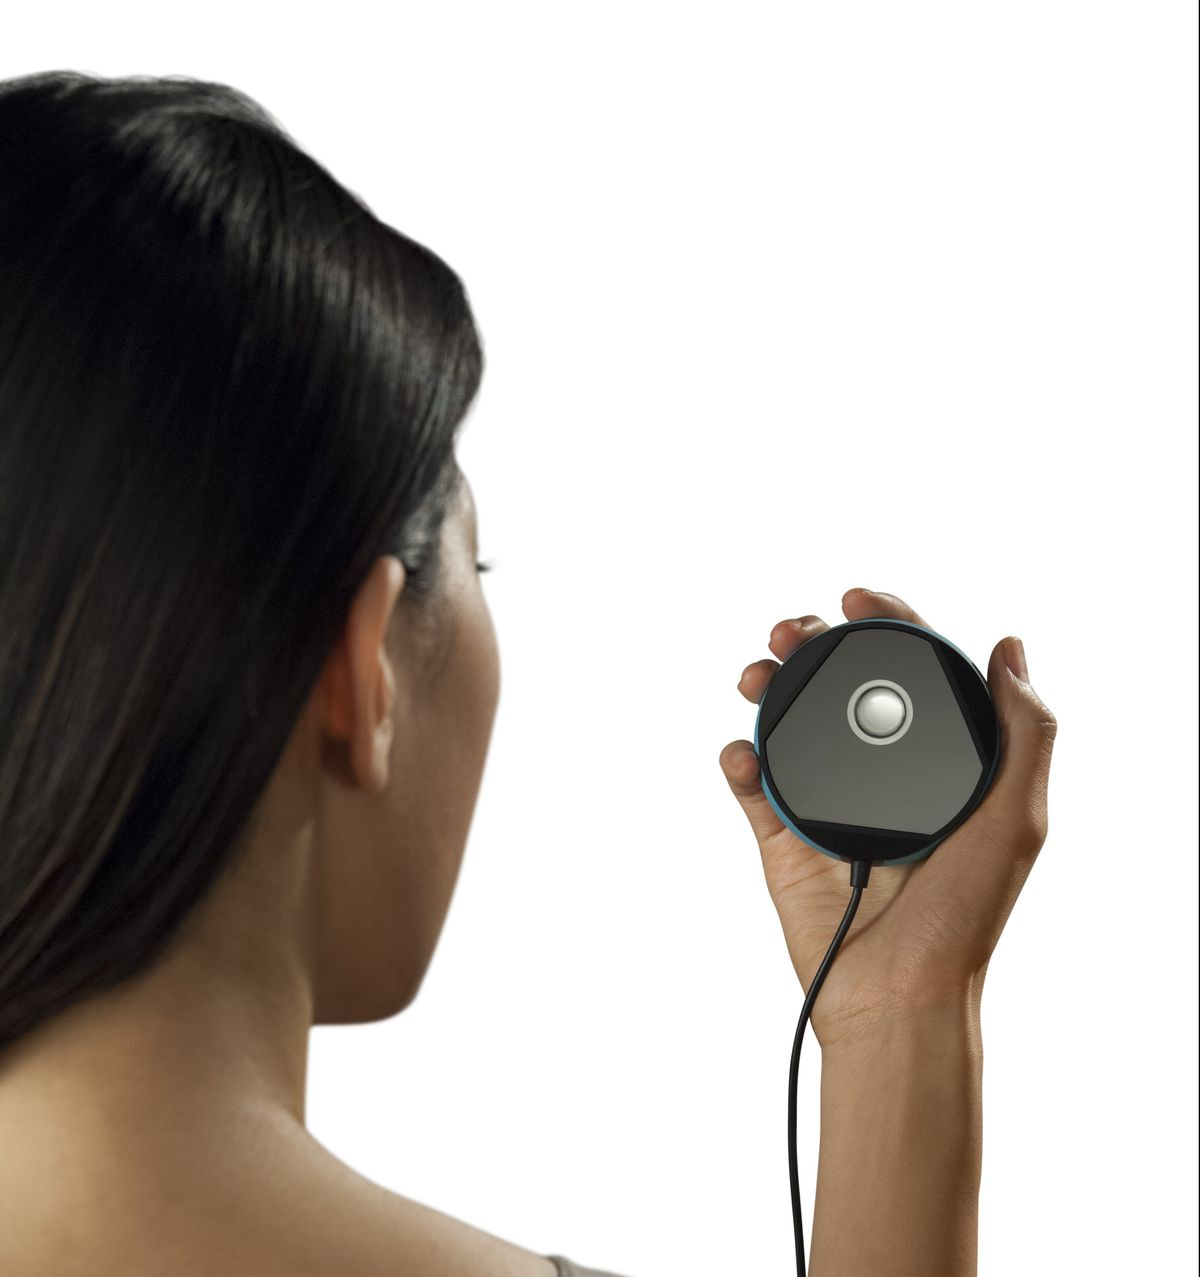 You look into the Myris so it can authenticate you based on your irises.